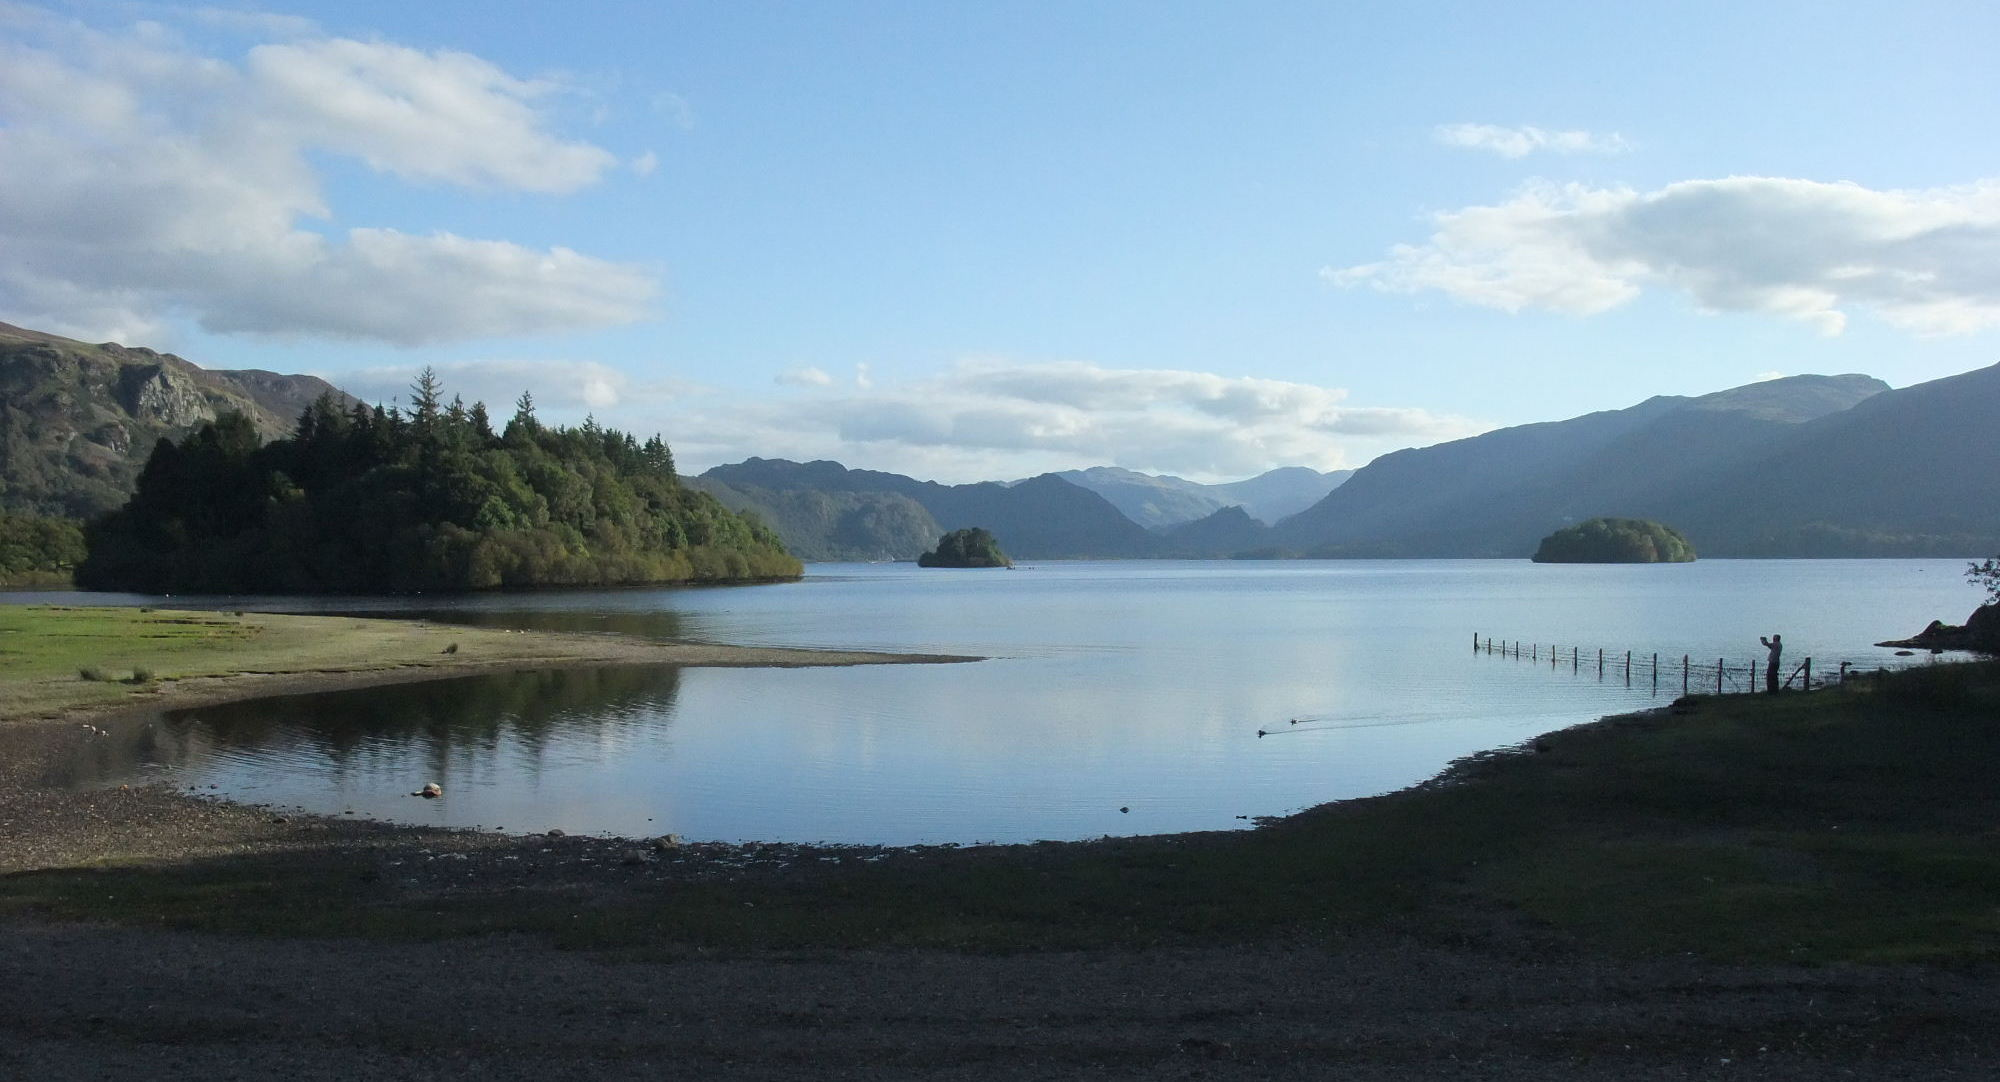 Another view of Derwent Water